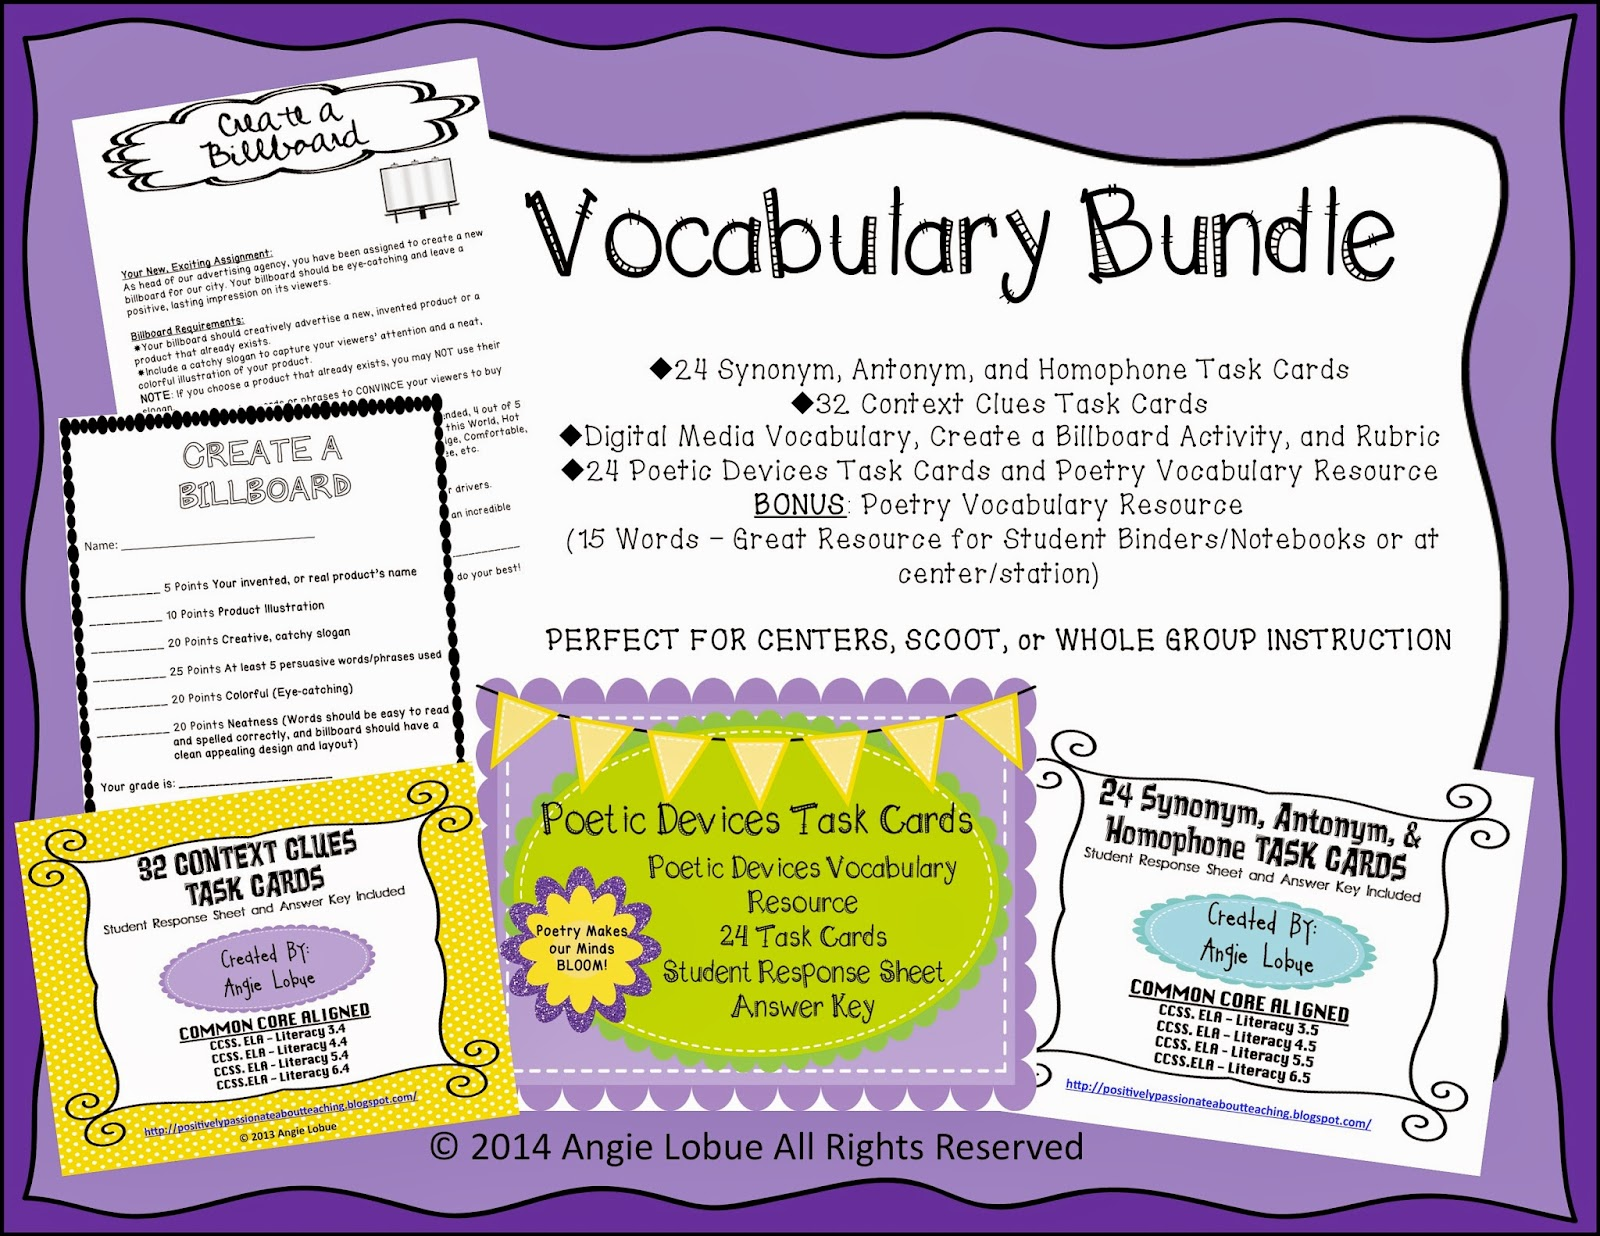 http://www.teacherspayteachers.com/Product/Vocabulary-Bundle-Task-Cards-and-Activities-SAVE-25-1078244